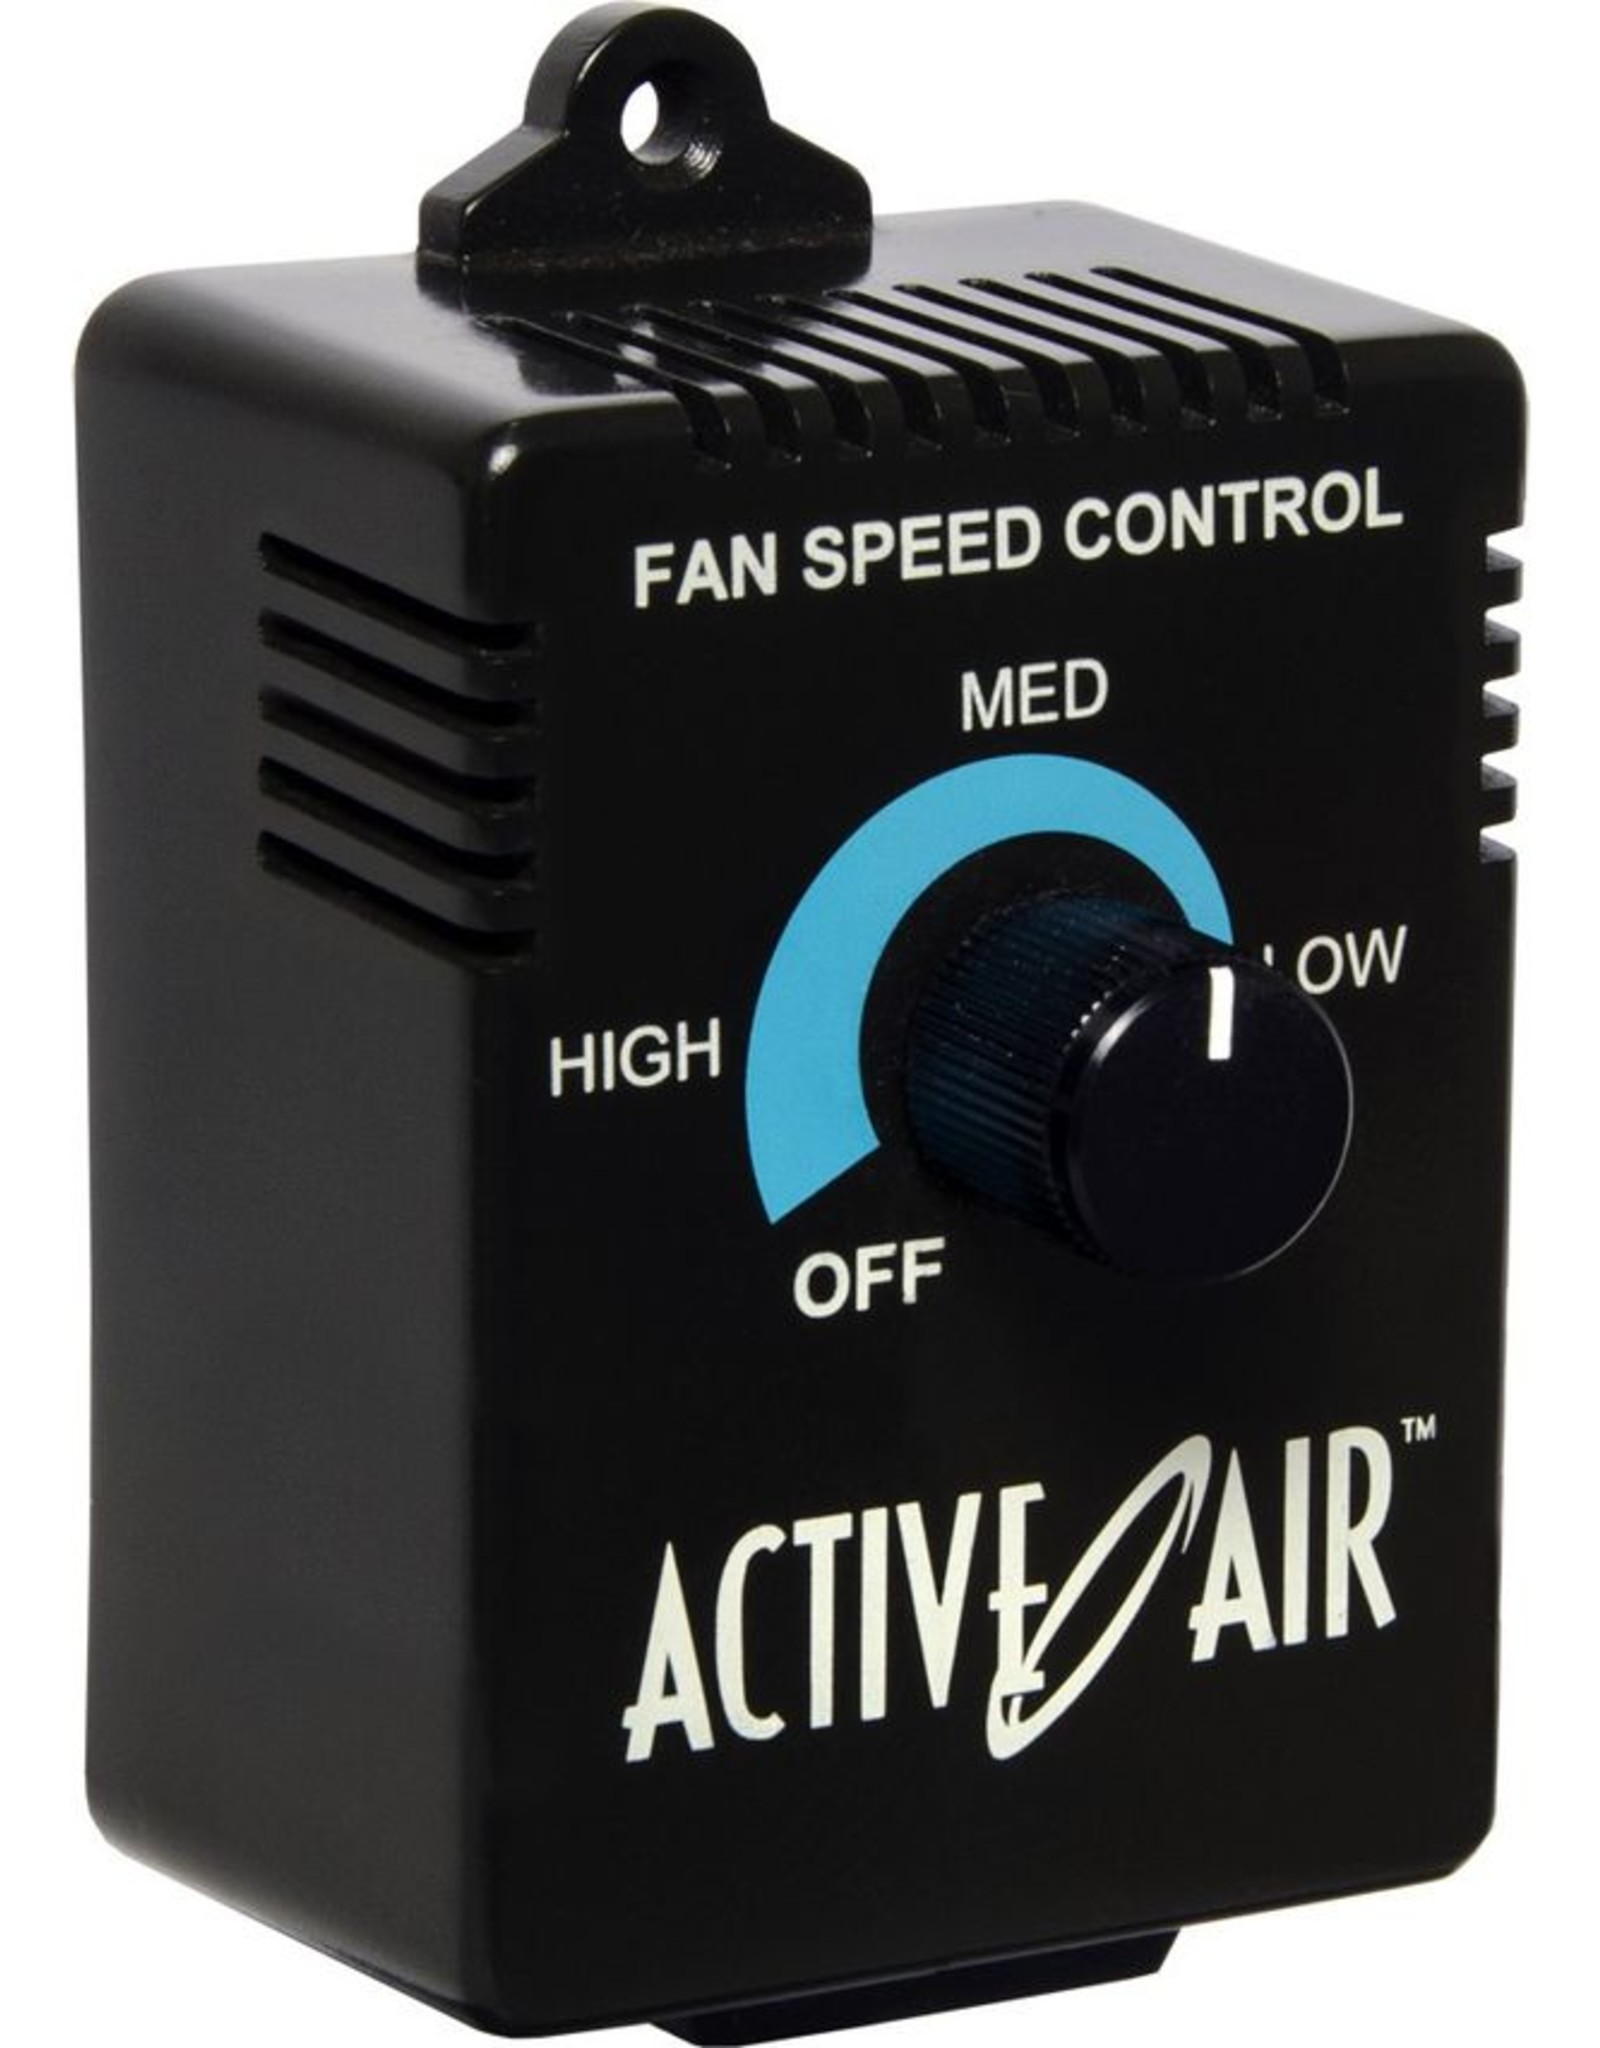 ACTIVE AIR Duct Fan Speed Adjuster